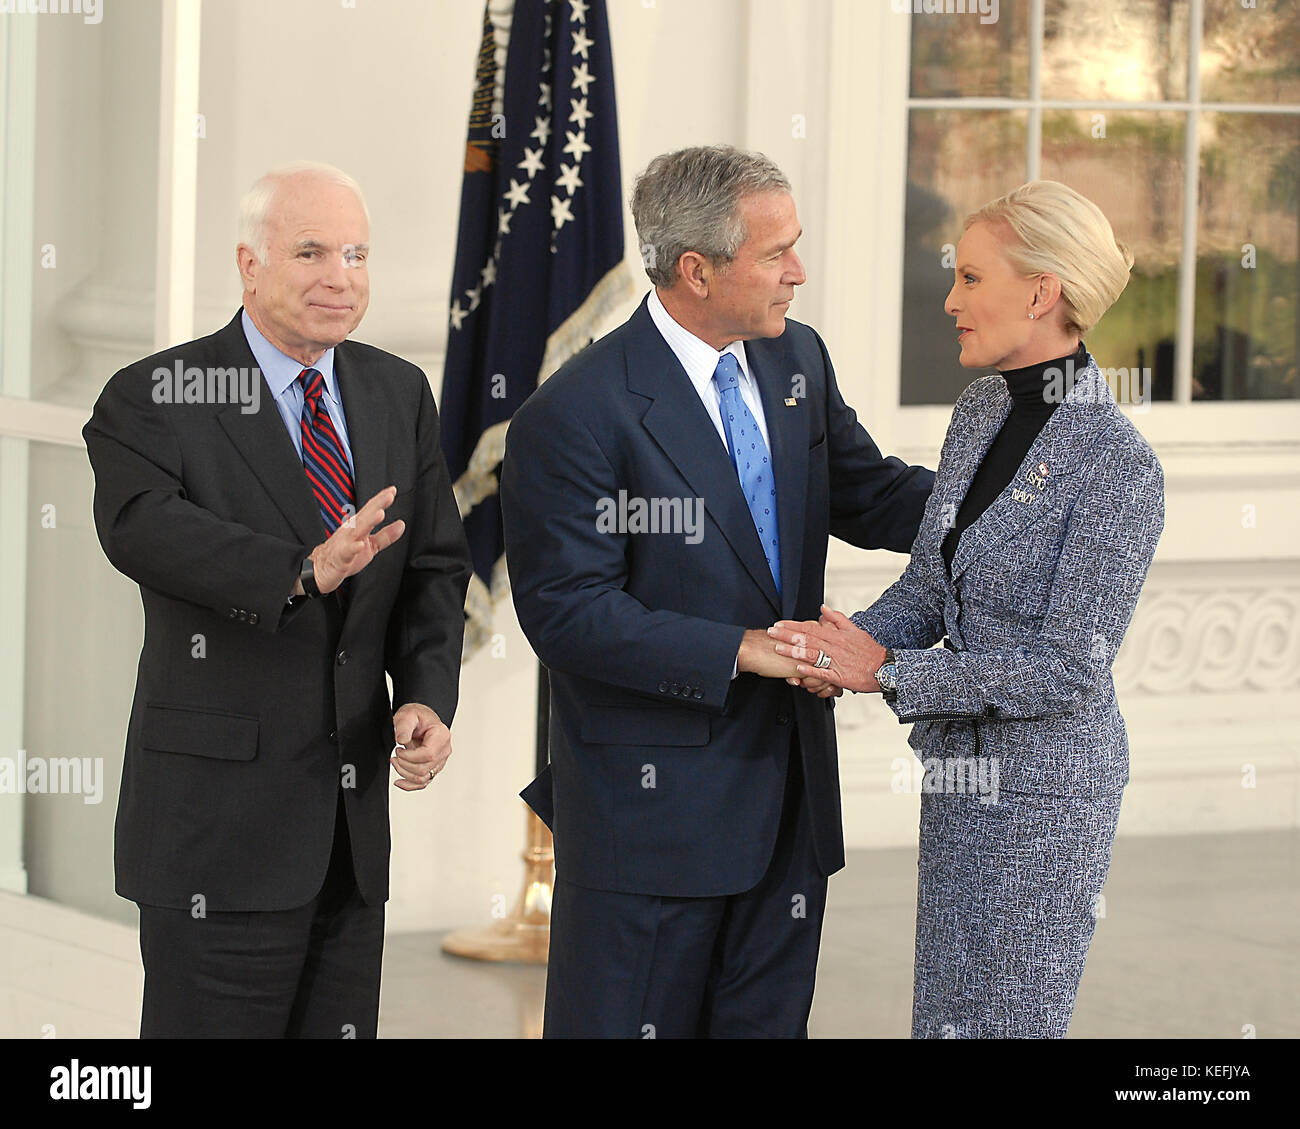 Jack Mccain: His Wife Cindy Mccain Stock Photos & His Wife Cindy Mccain